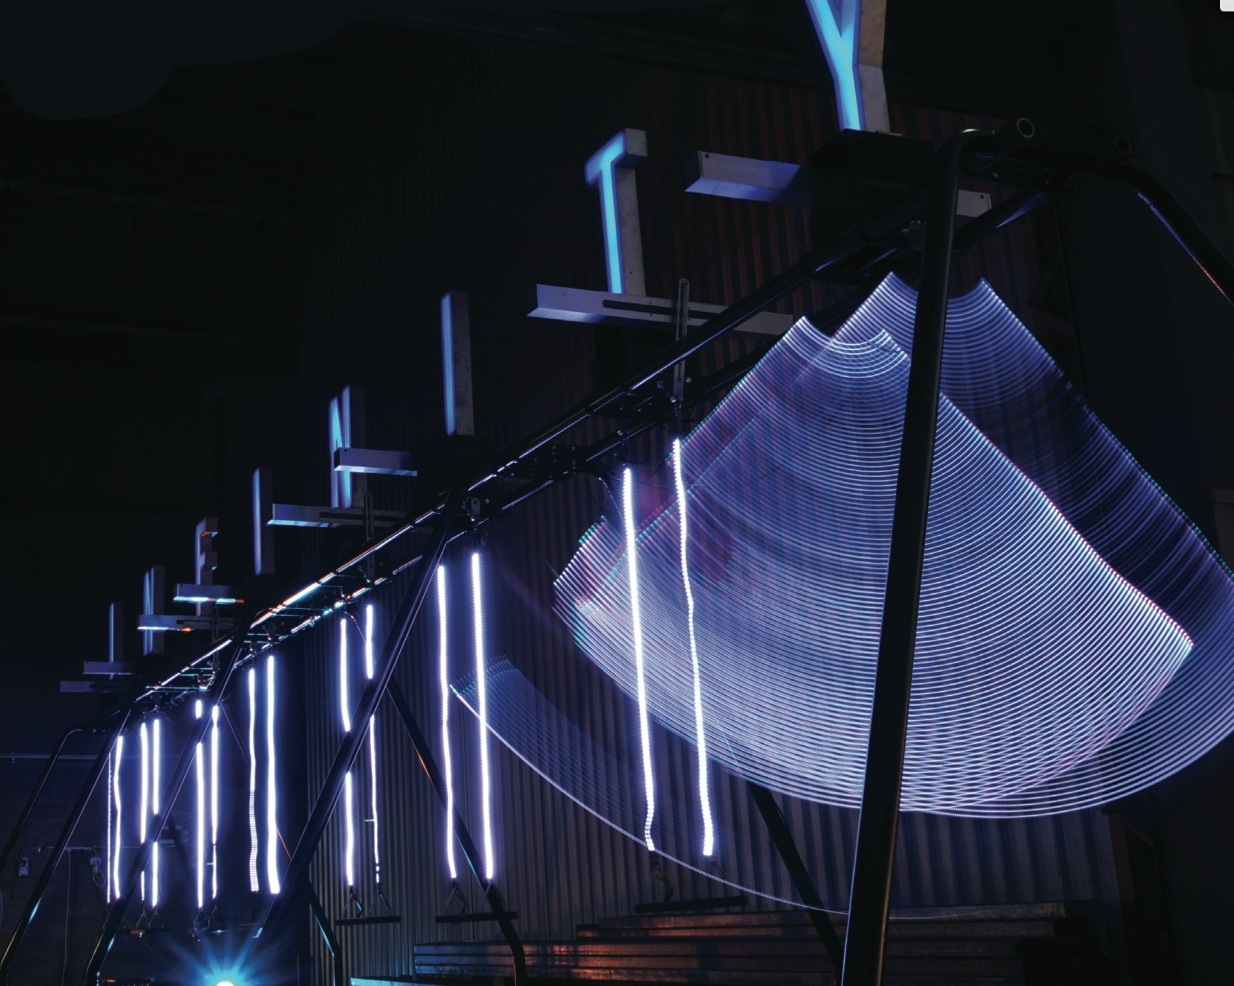 Swinging for science: inside 'Infinity' for CSIRO by Reborn